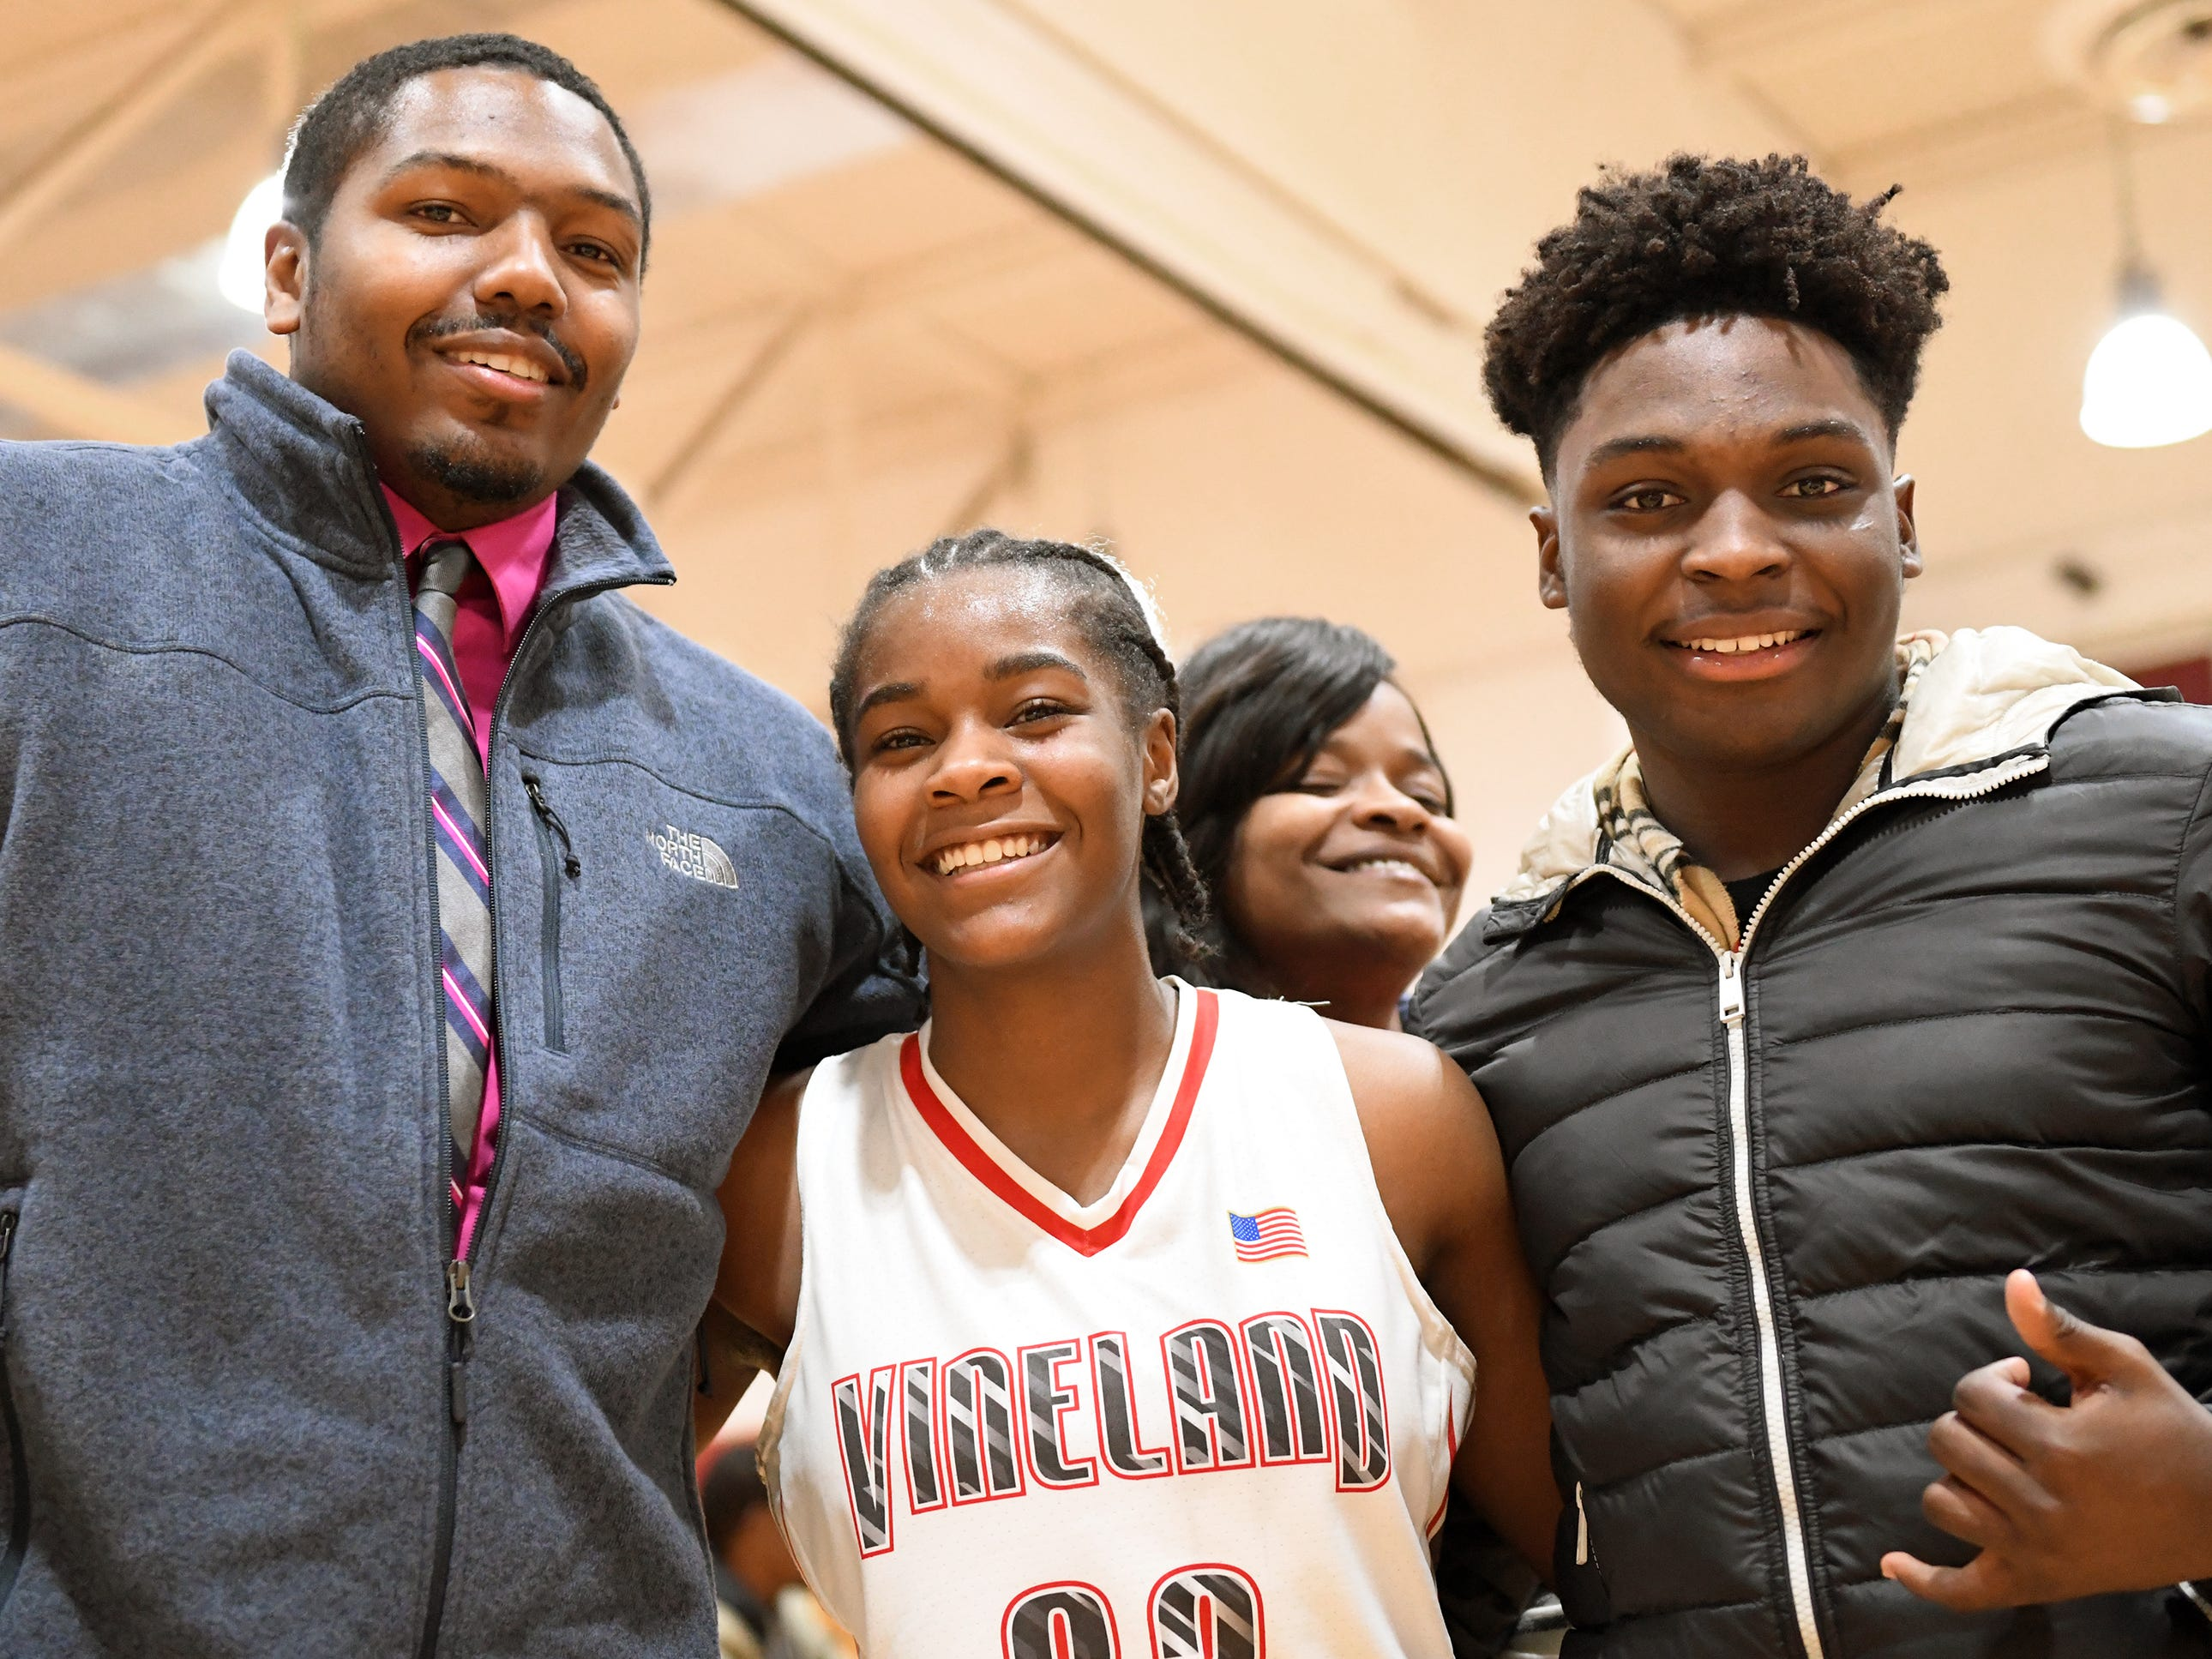 Vineland High School senior Briel Herbert celebrates her 1,000th career point with family and friends after defeating Millville 57-35 on Wednesday, Jan. 16, 2019.